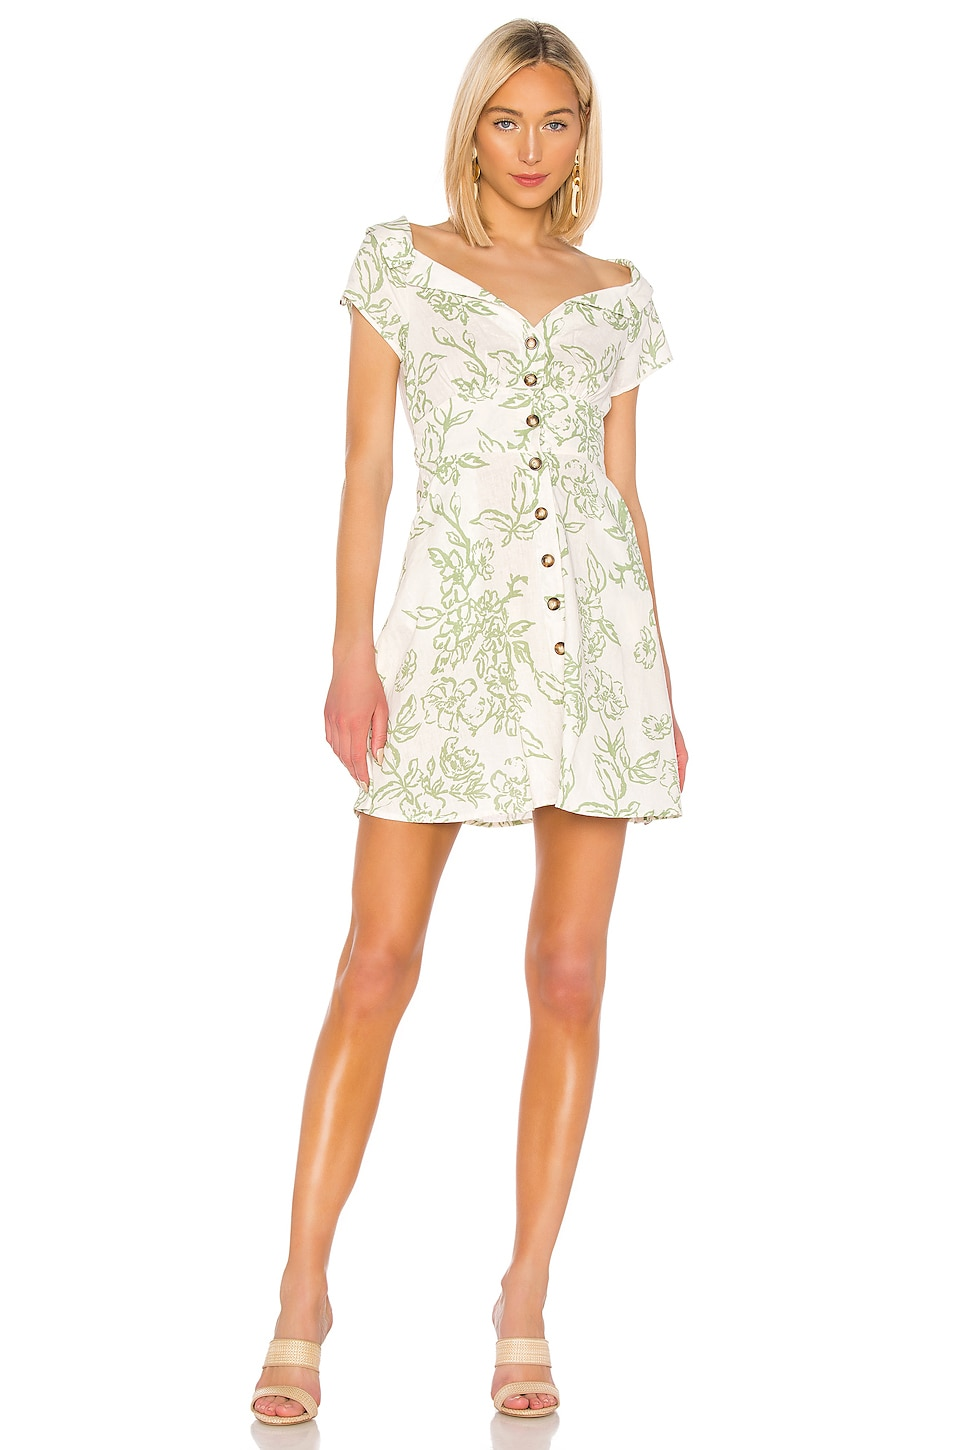 Free People Dresses FREE PEOPLE A THING CALLED LOVE MINI DRESS IN WHITE.